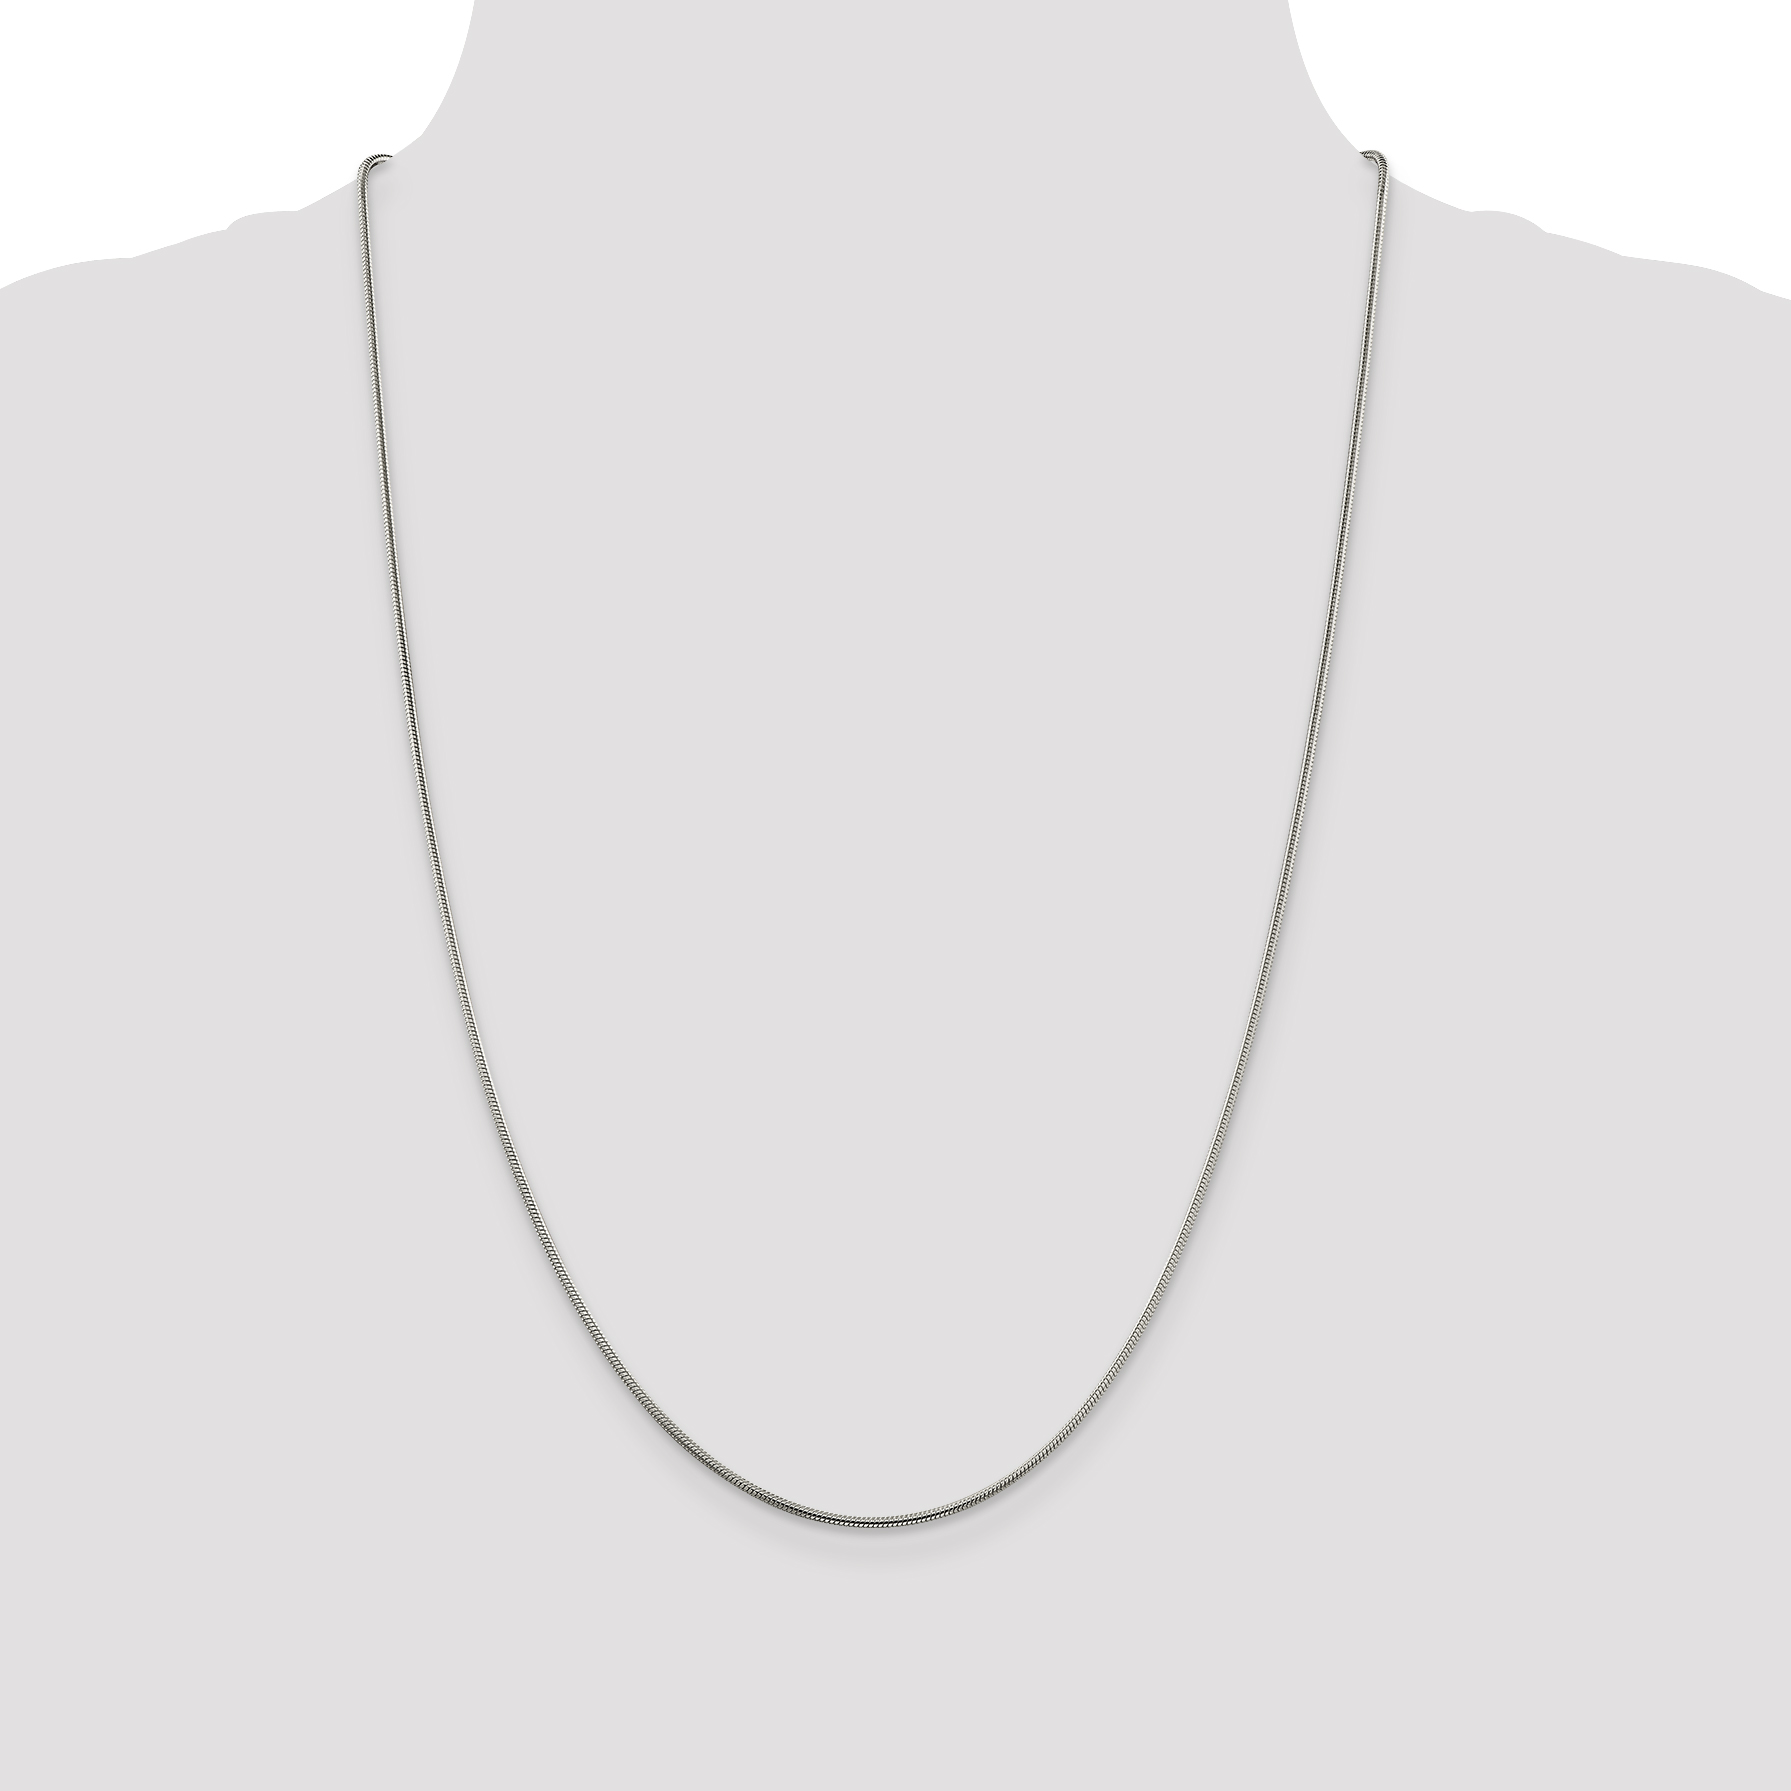 925 Sterling Silver 1.5mm Round Snake Chain 24 Inch - image 3 of 5